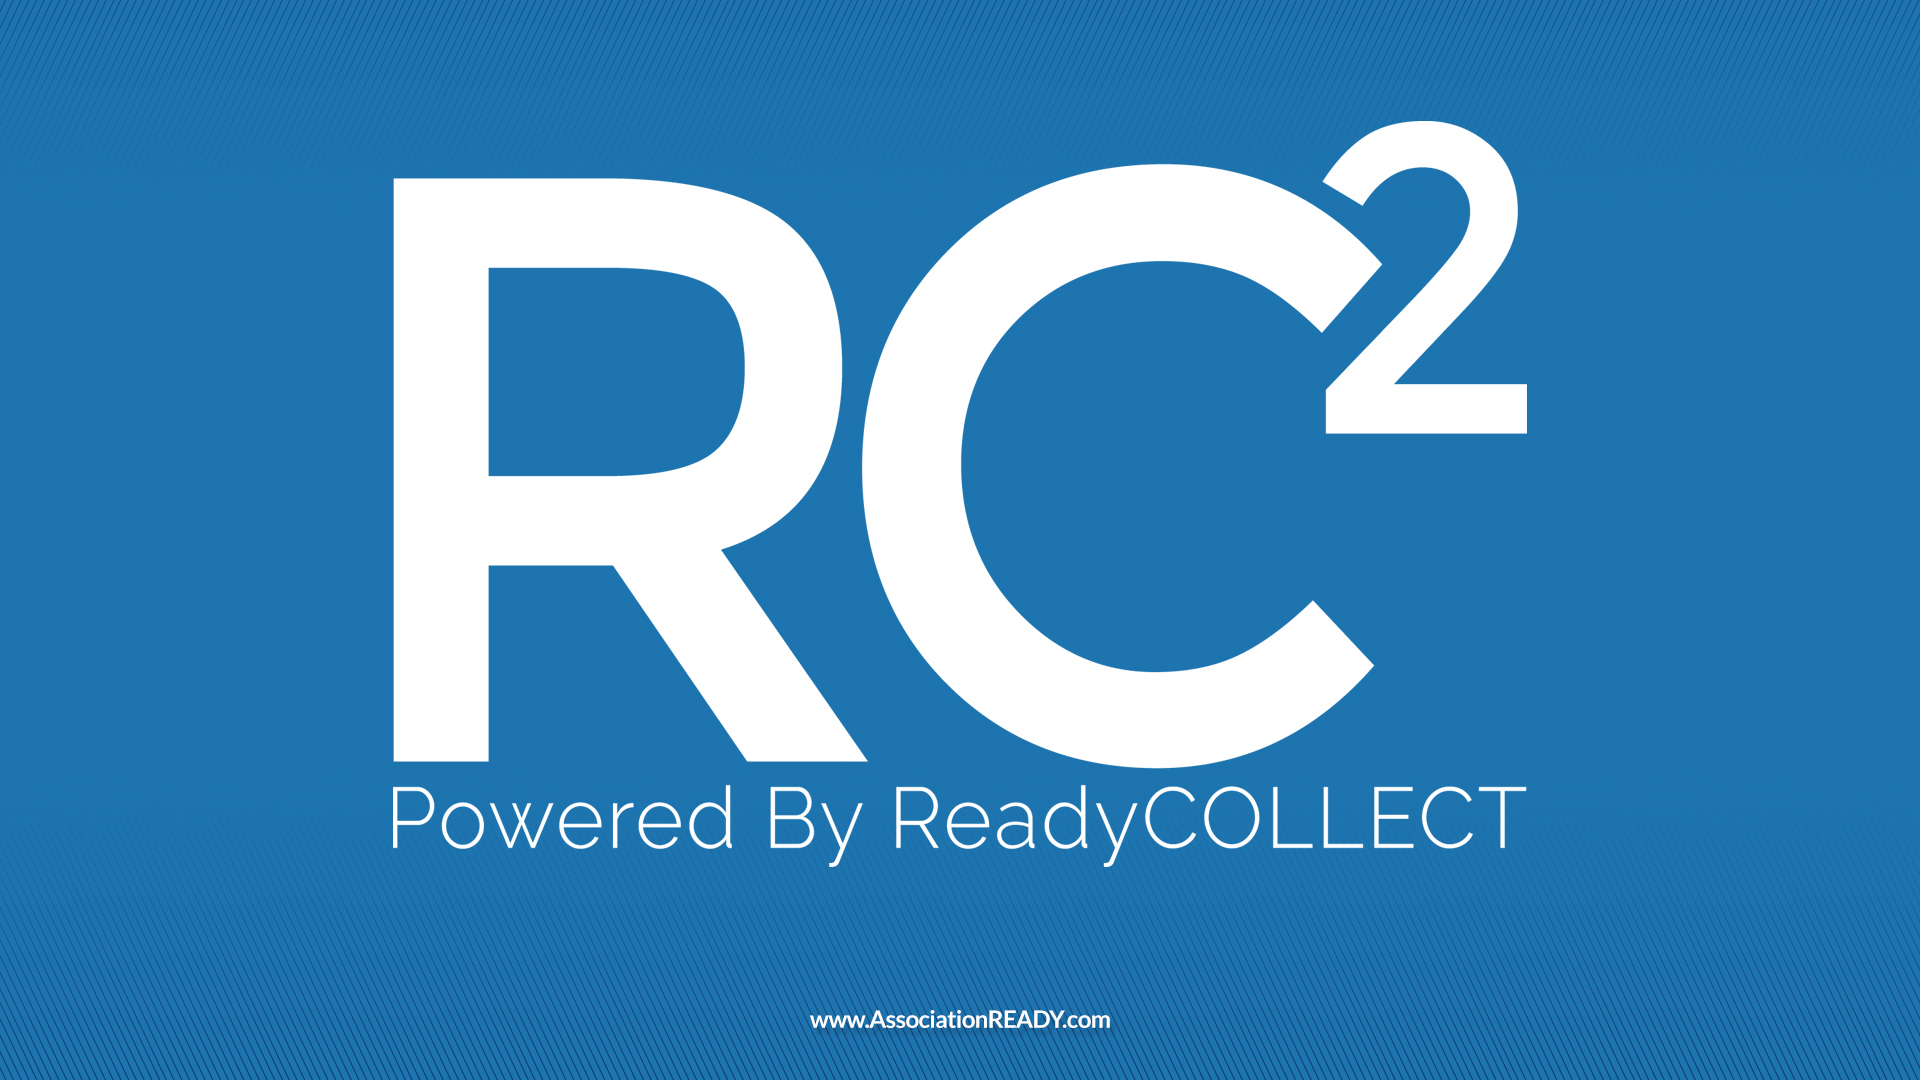 RC2 ReadyCOLLECT Red Desktop WallPaper - Click to Download Larger Version